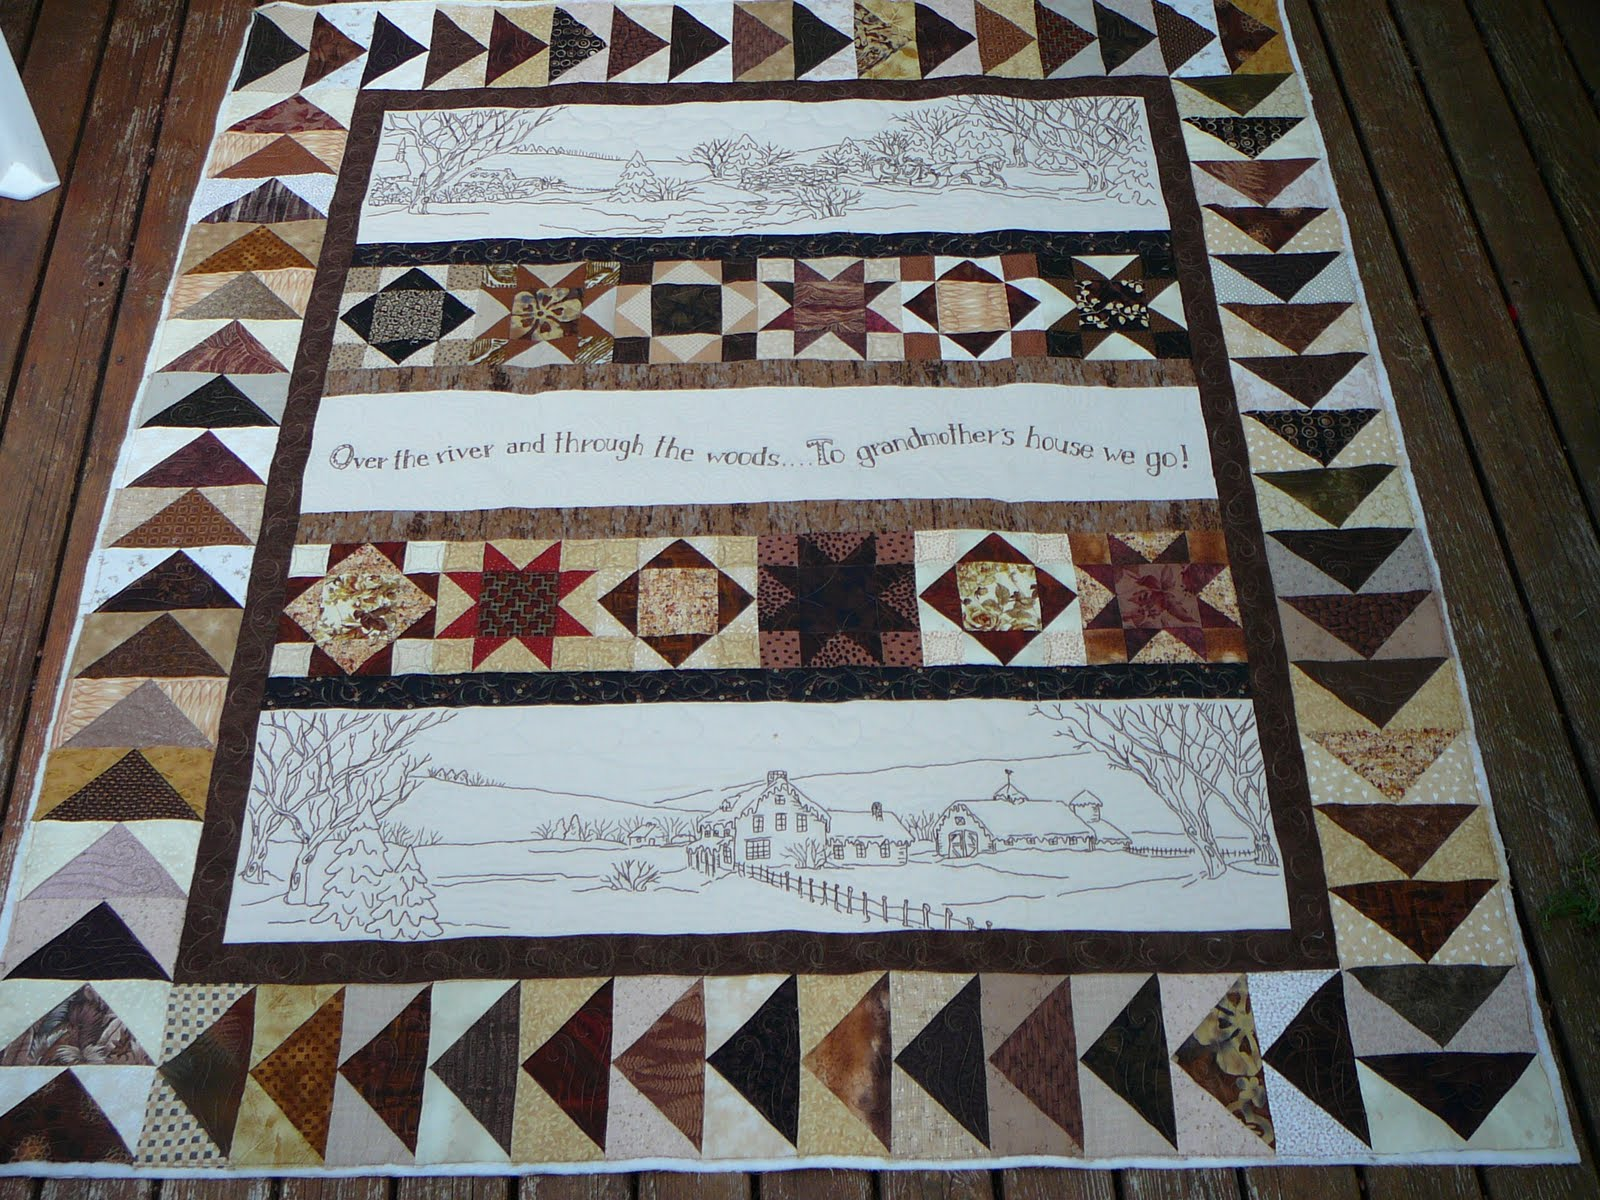 Sharon's Seams 2 B: The Crabapple Hill Quilts : crabapple hill quilts - Adamdwight.com